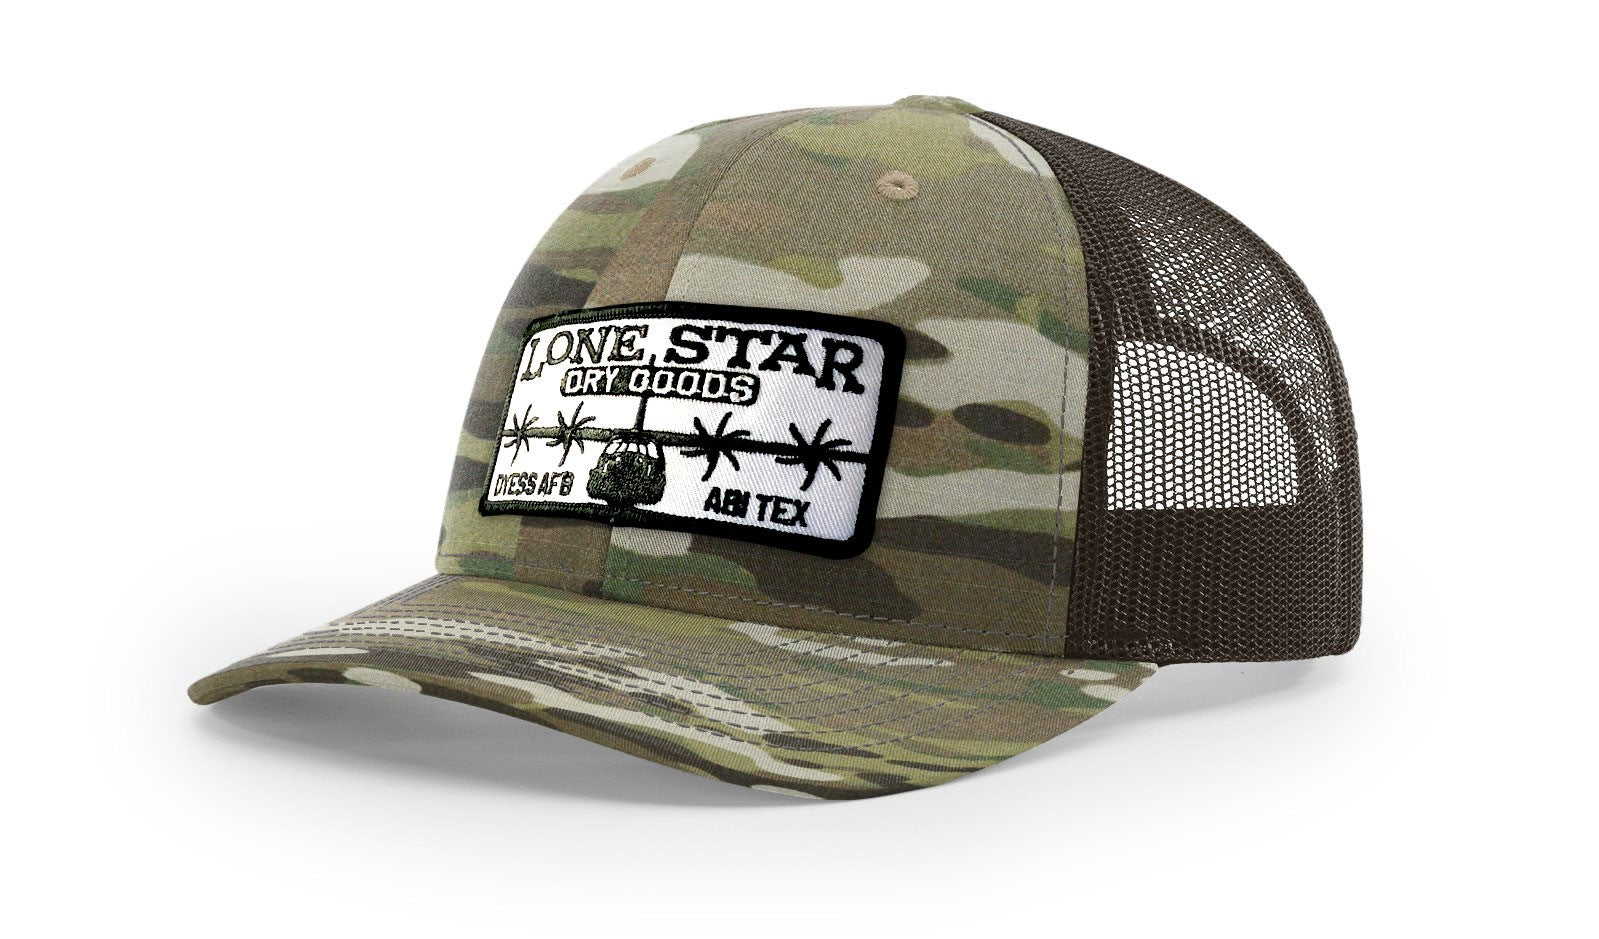 C130 Patch Hat – Lone Star Dry Goods